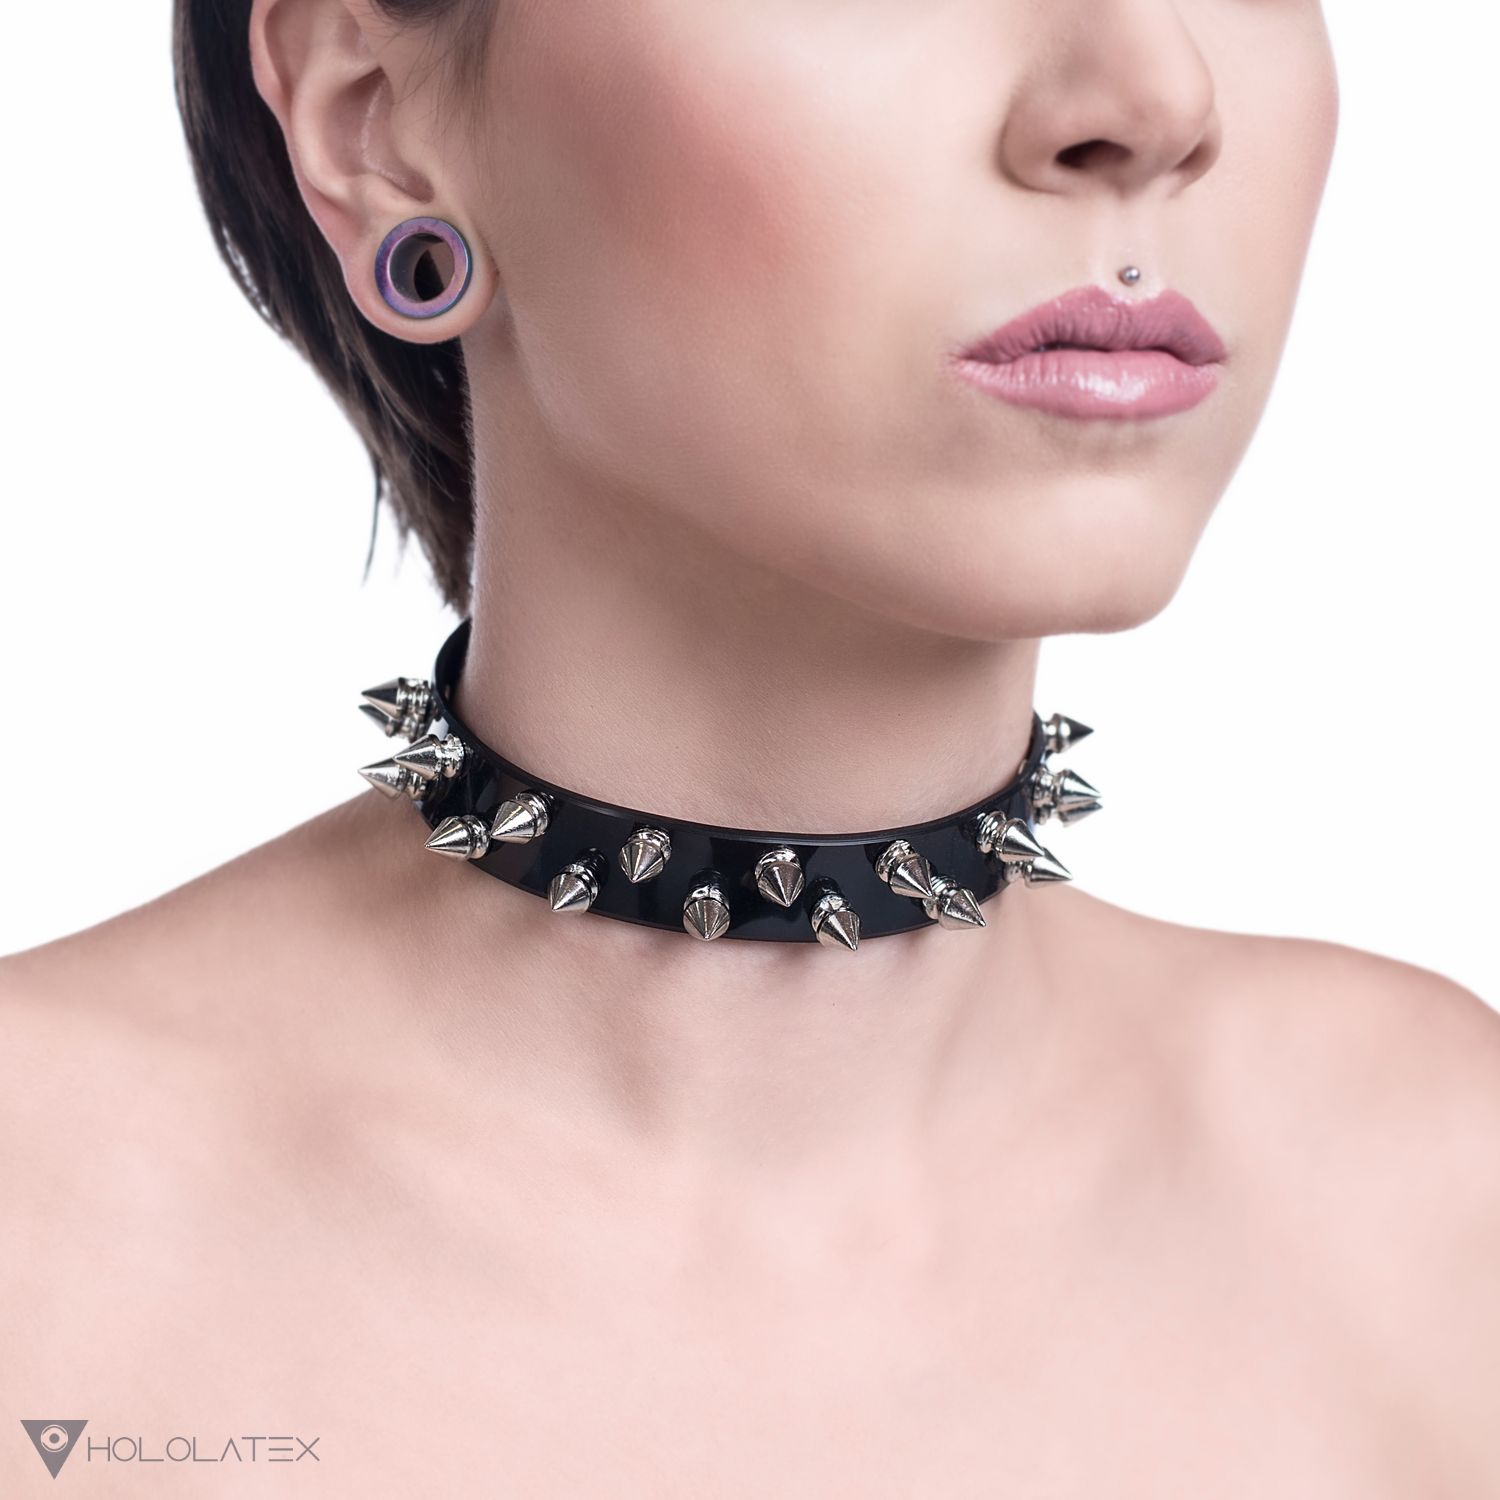 A choker necklace from black PVC decorated with spikes along its entire circumference.